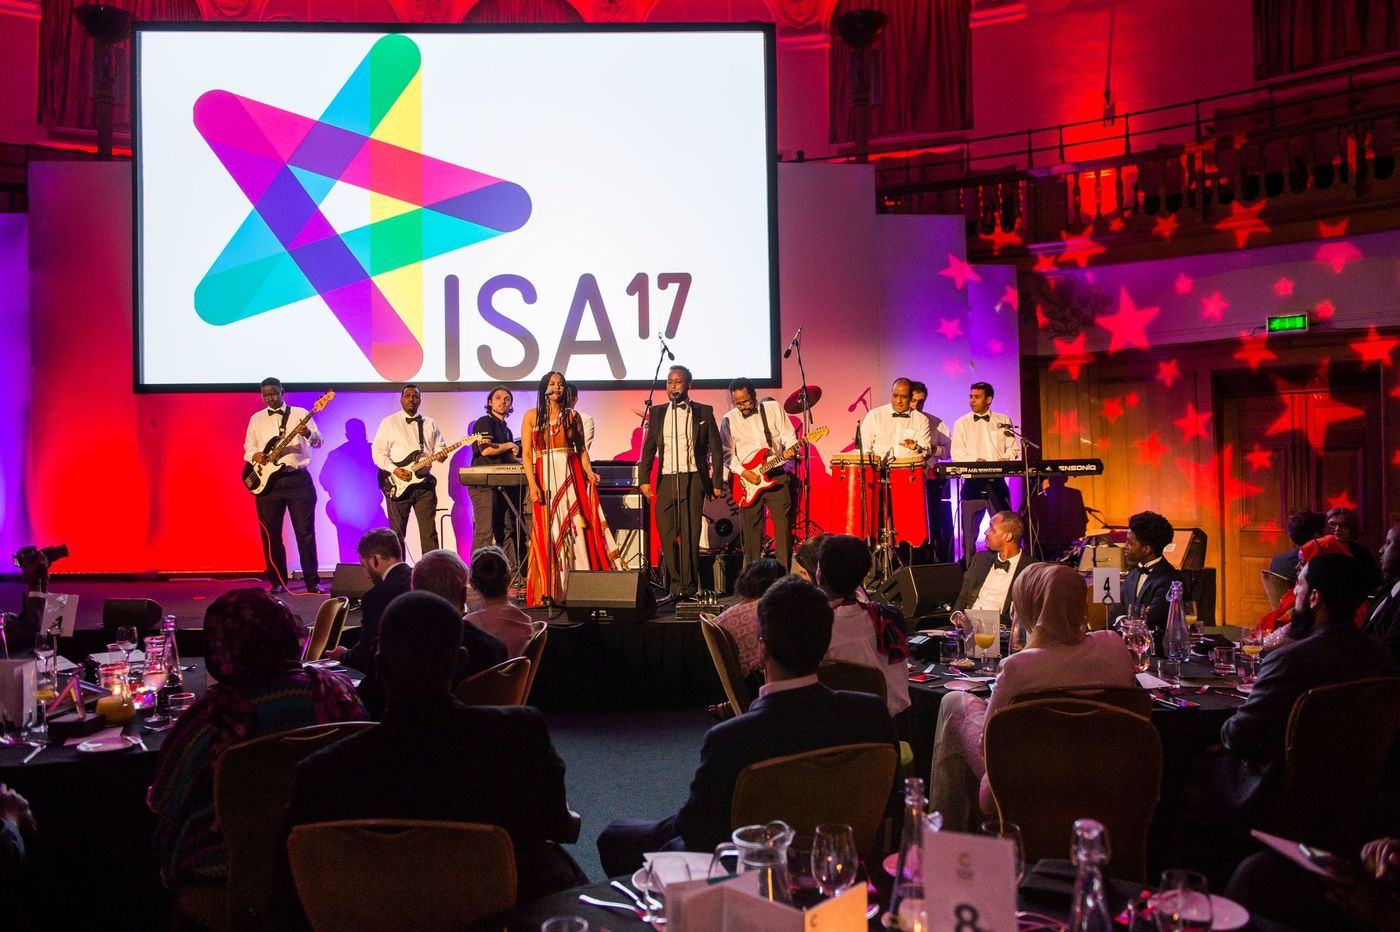 X large 1560783421 isa17 receptionawards 15mar17 354 church house conference centre london